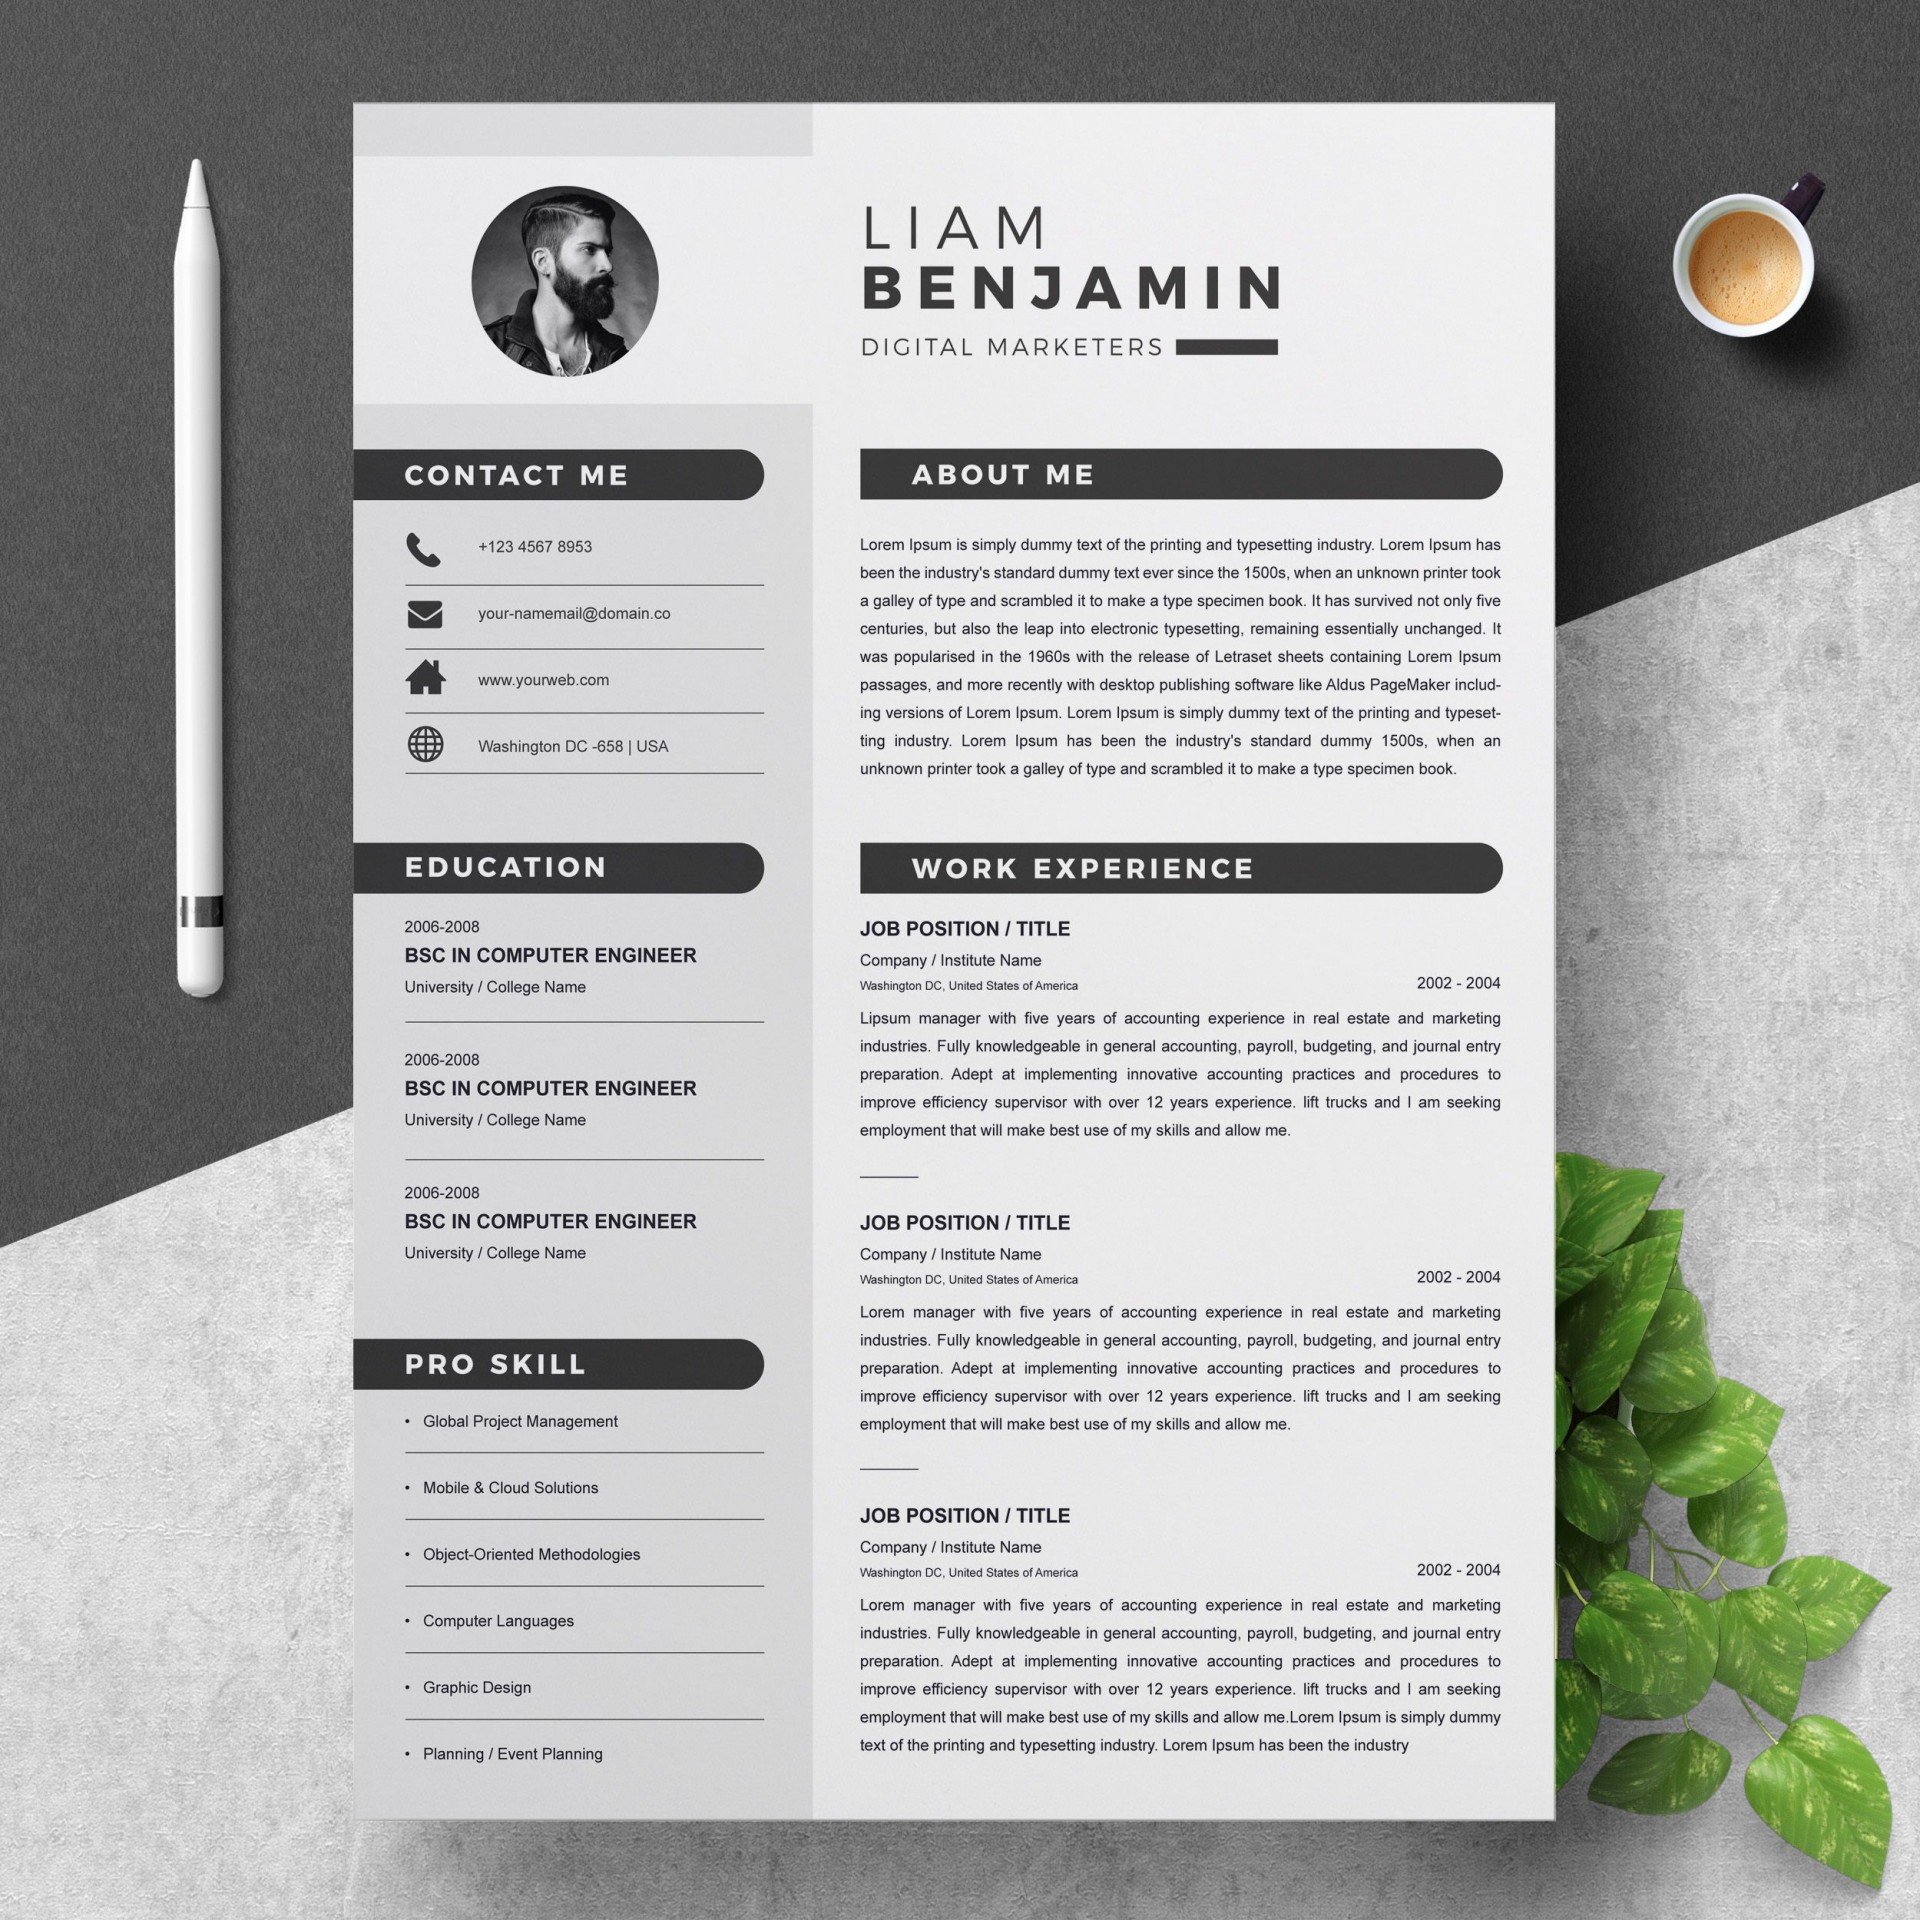 000 Rare Resume Template Free Word Image  Download Document 2020 For Fresher1920